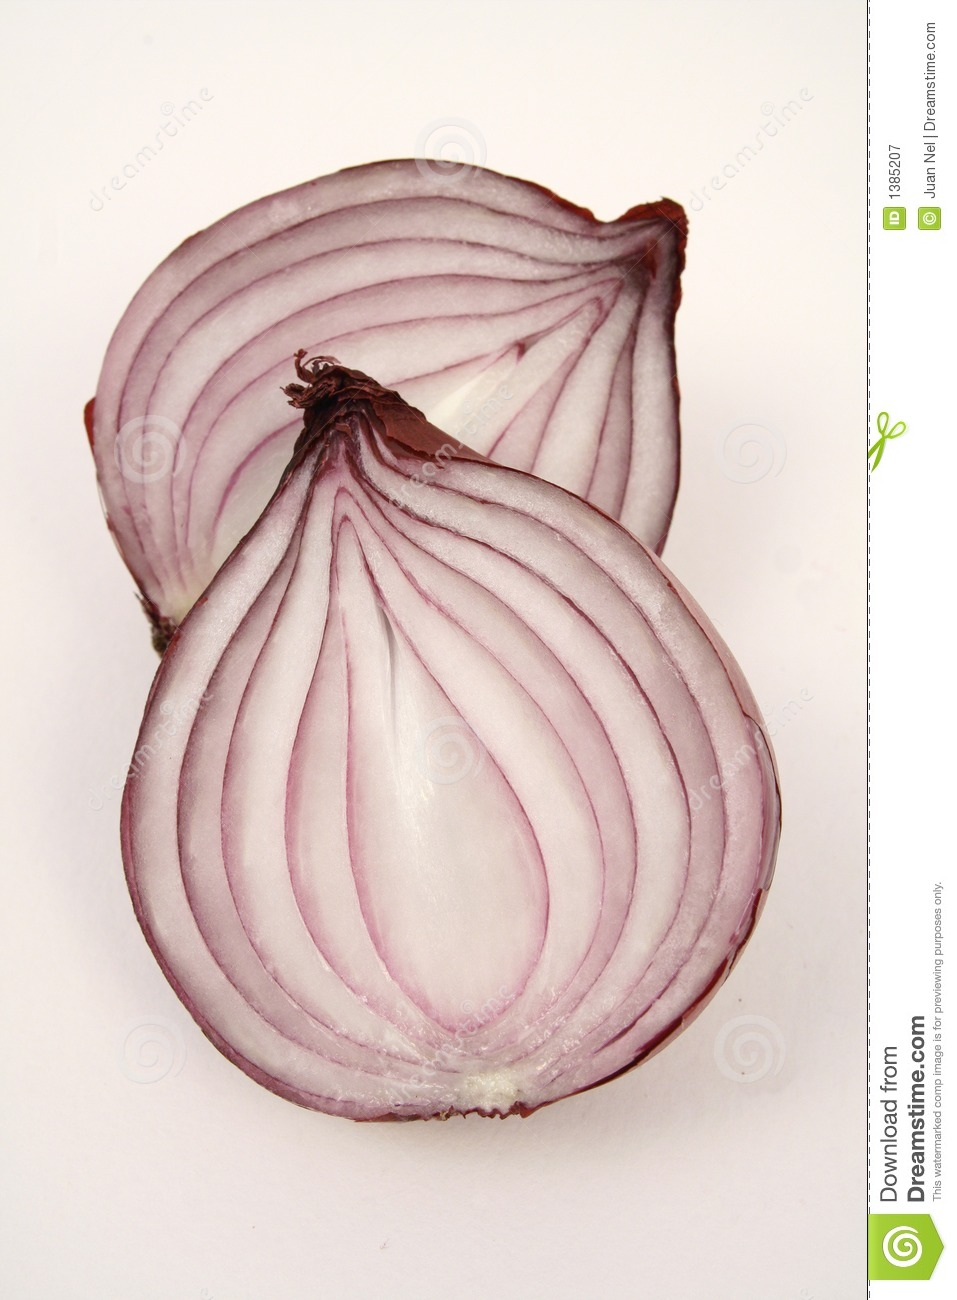 Red Onion Cut In Half Stock Image Image Of Onion Cooking 1385207